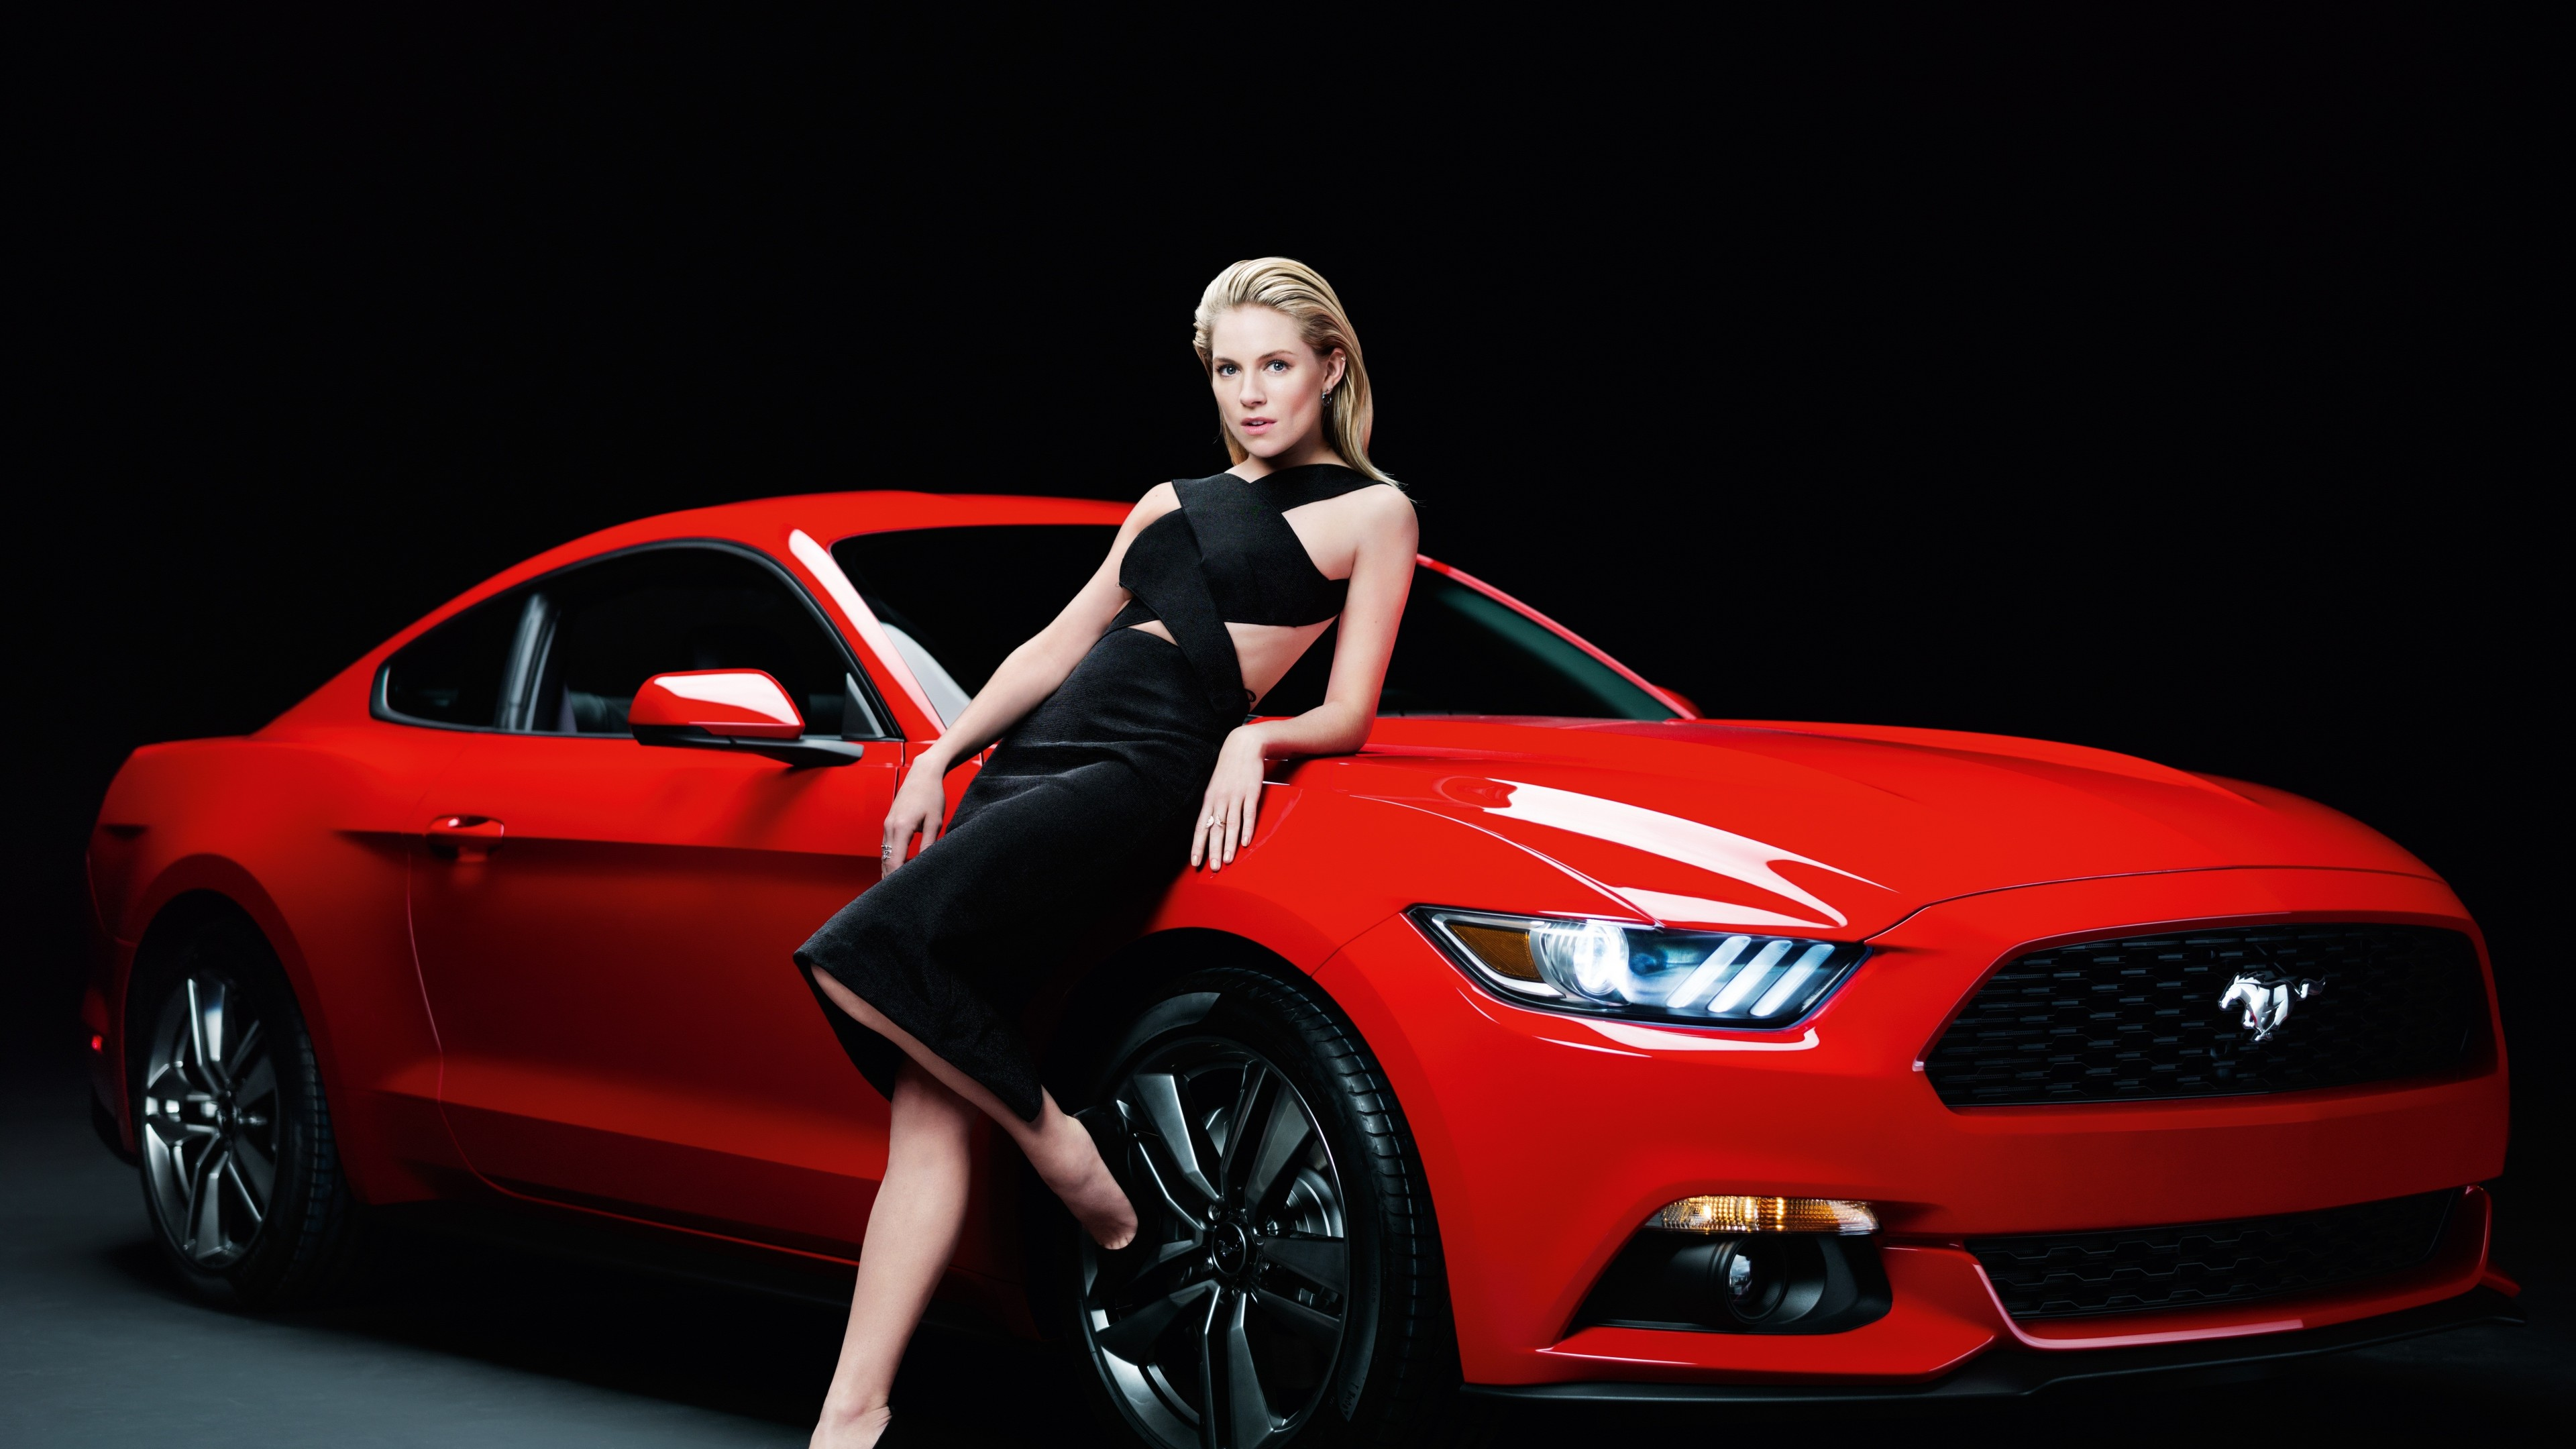 4k Wallpaper Muscle Car Wallpaper Ford Mustang Sienna Miller Girl Red Coupe